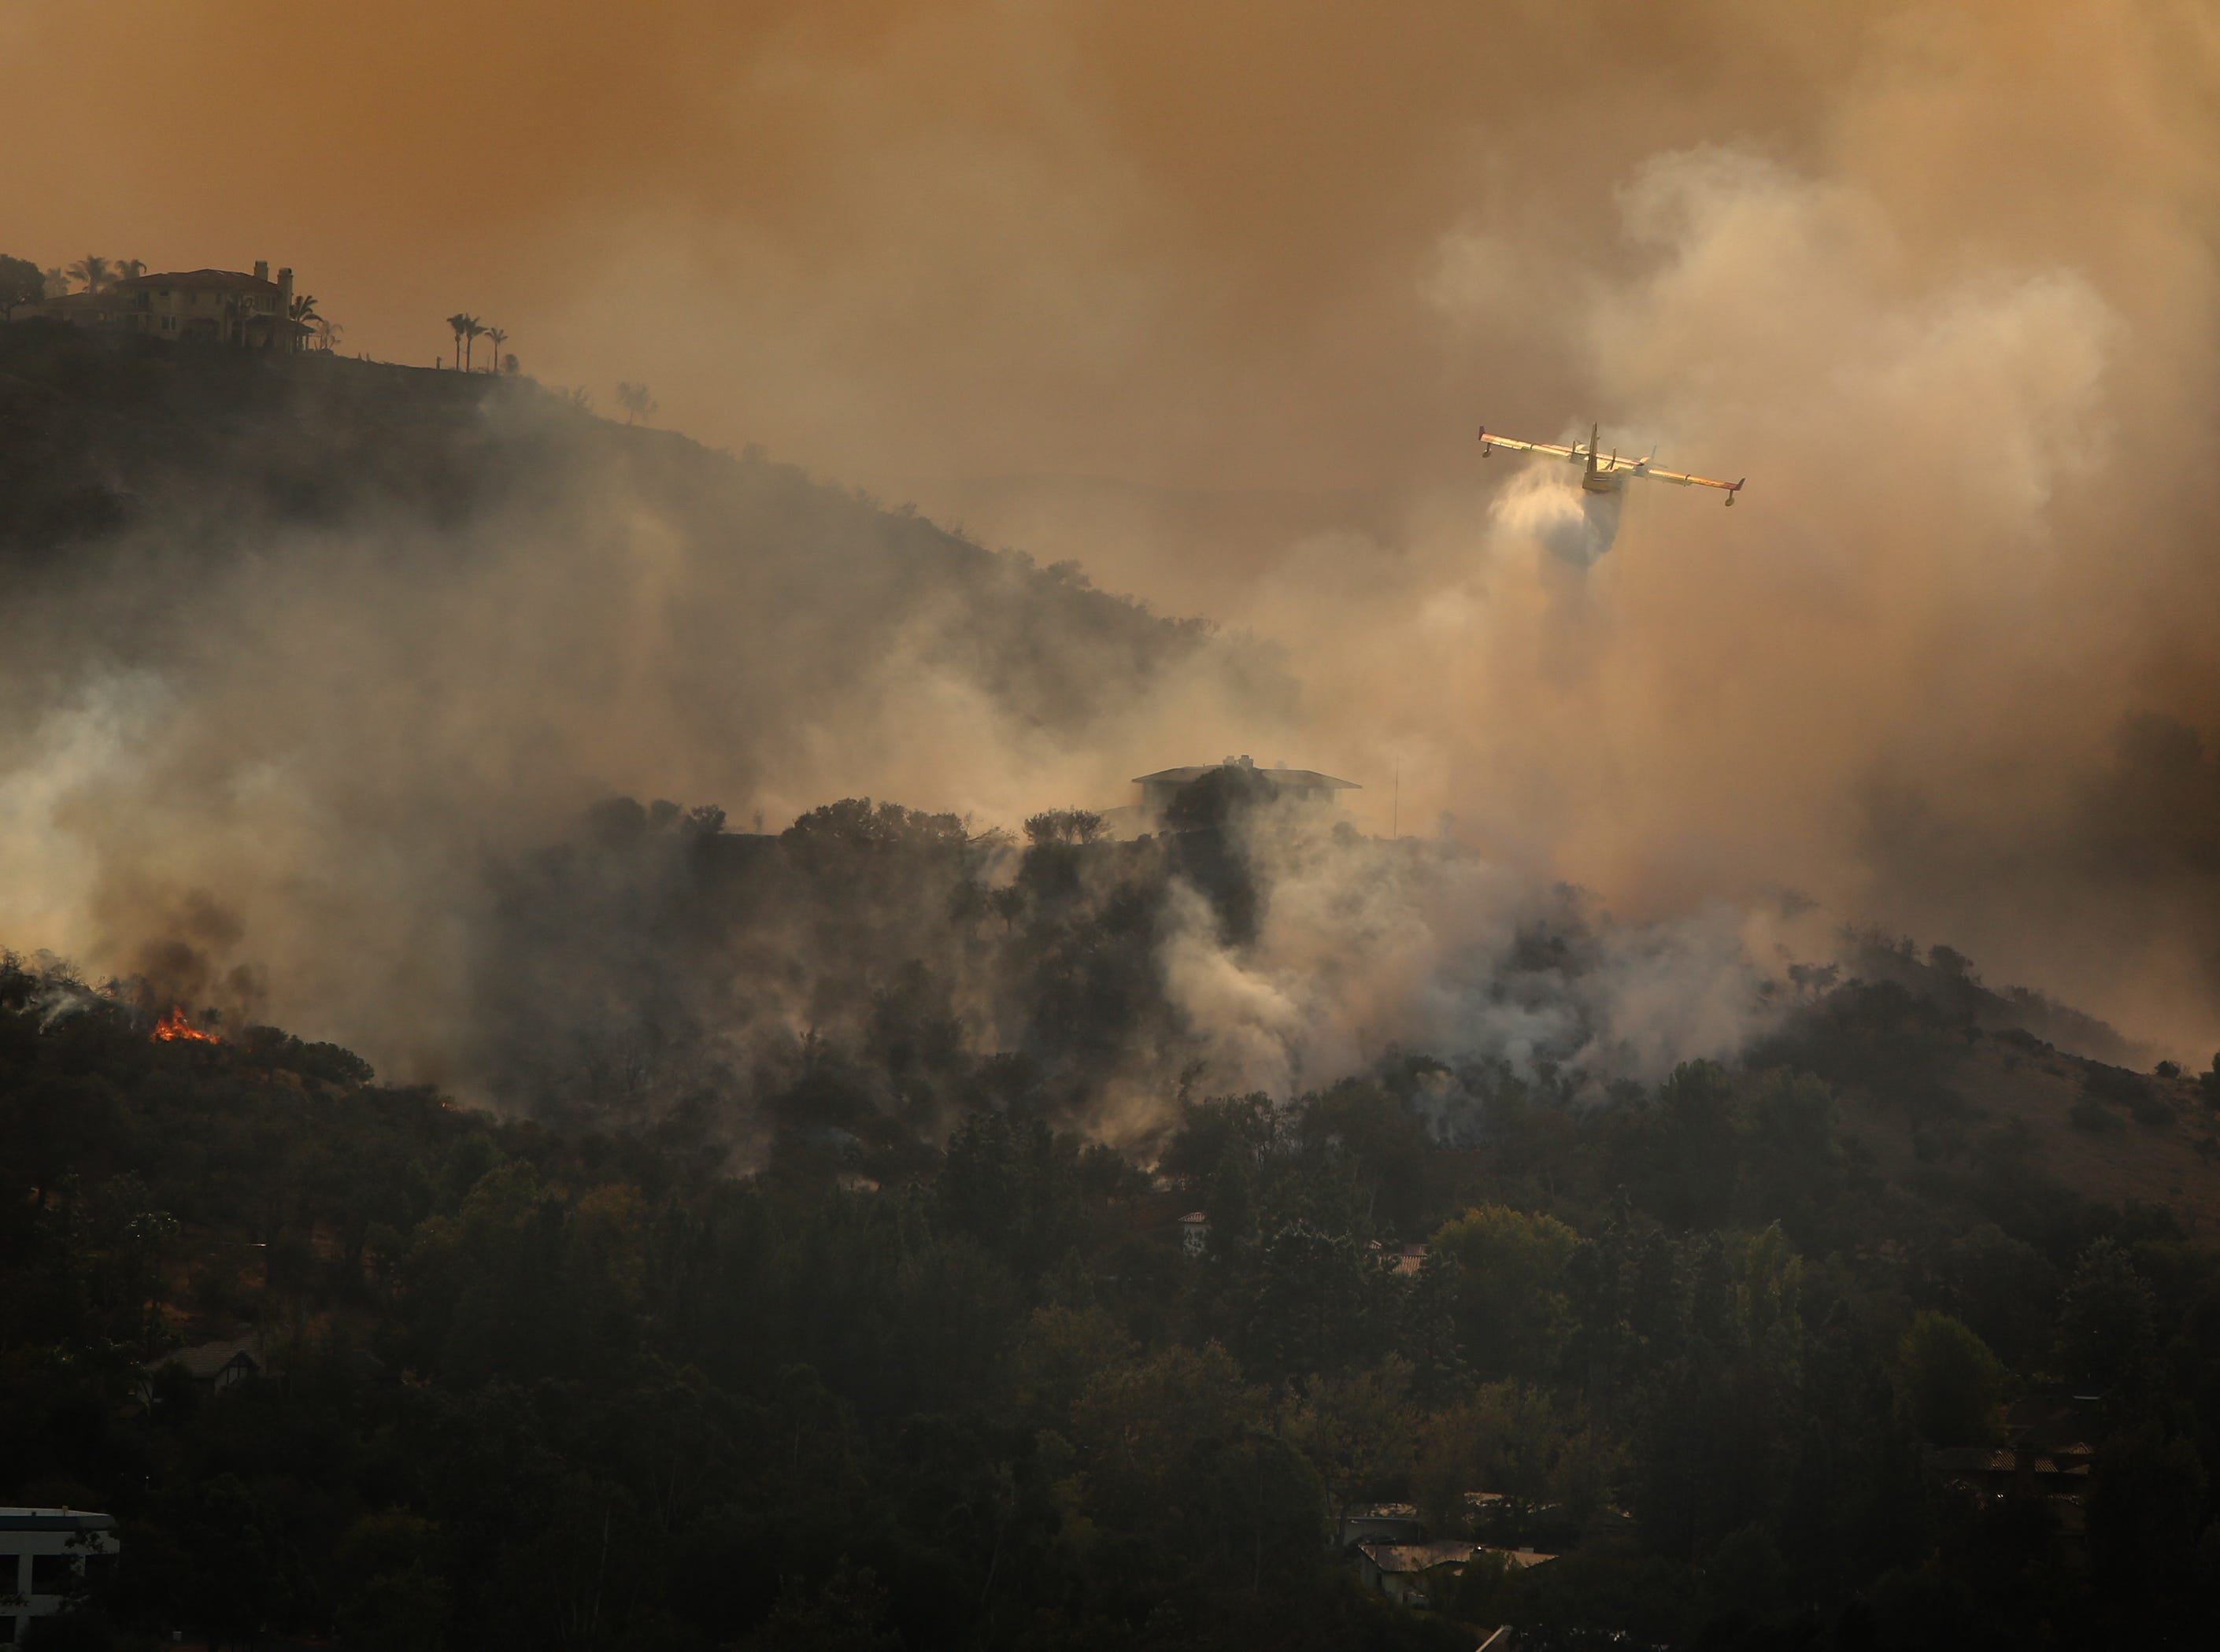 Weather forecasters warn of upcoming rain in Hill Fire, Woolsey Fire burn areas